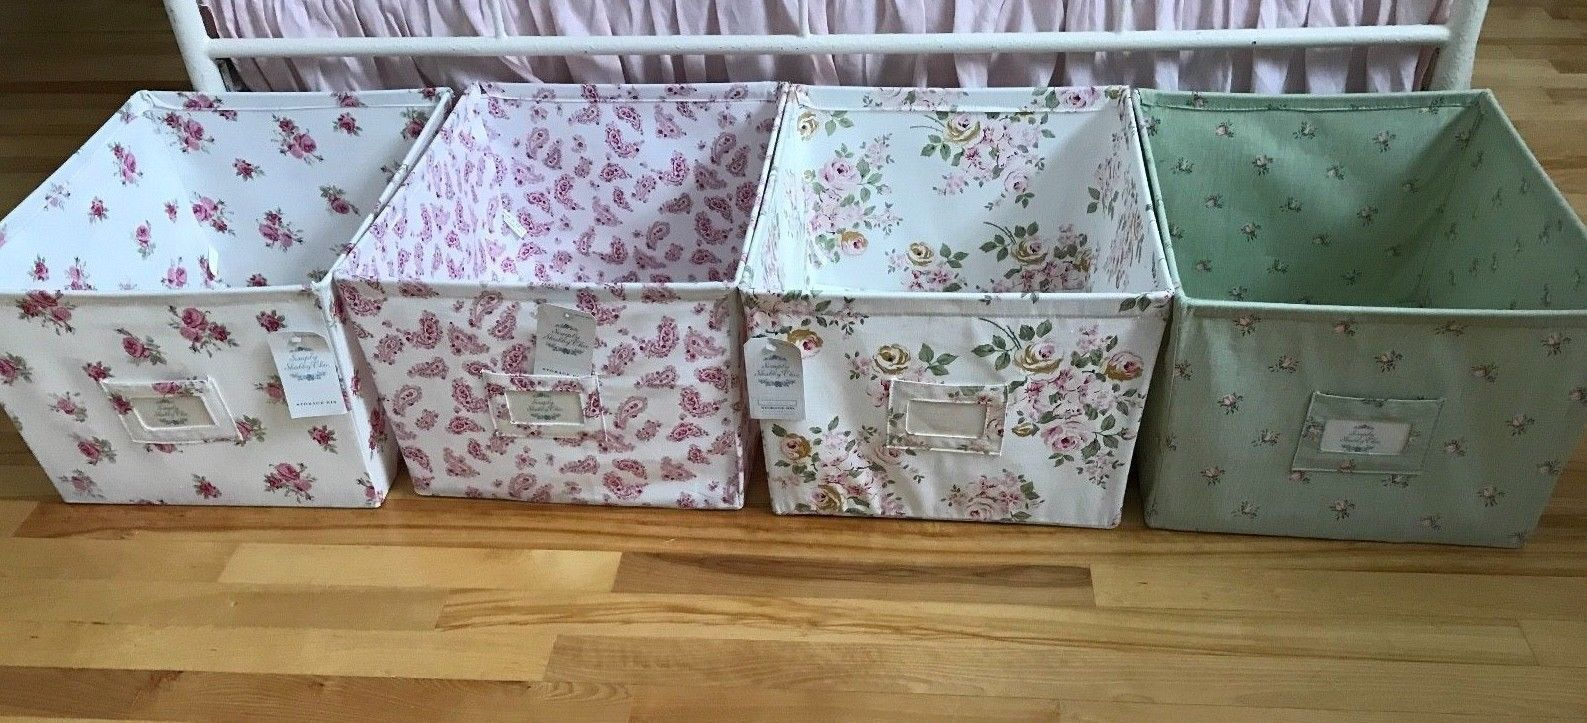 Simply Shabby Chic Storage Bins For Your Space